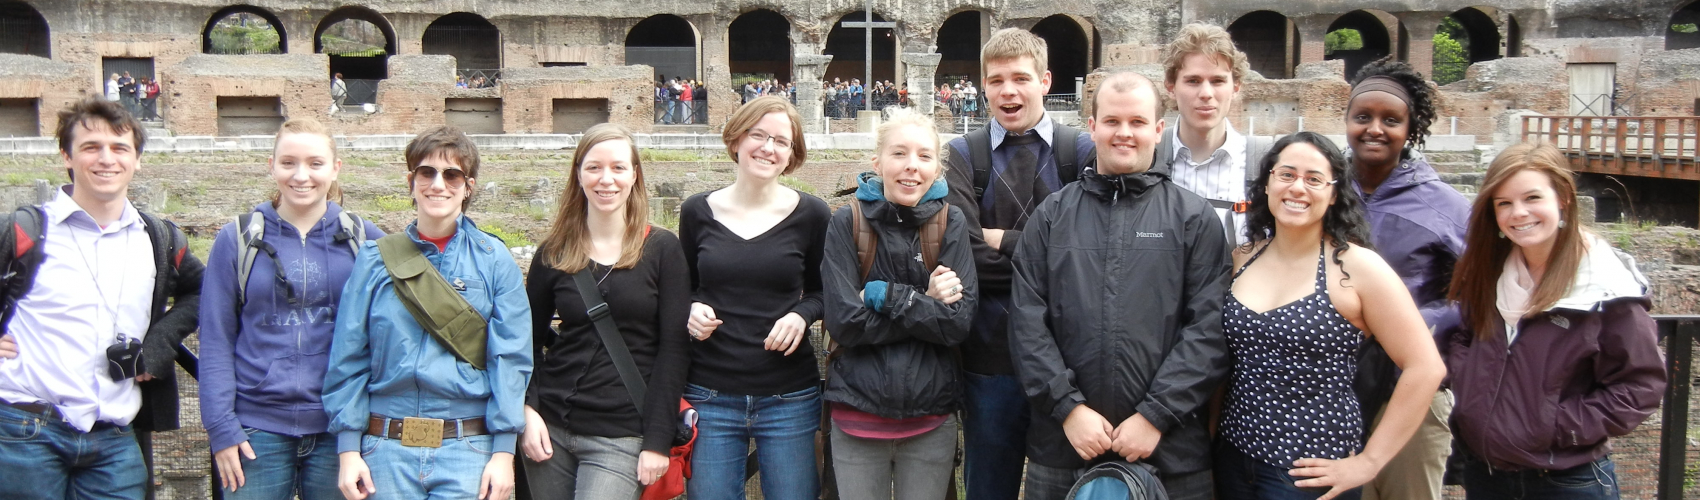 Professor Kathryn Topper and students at the Roman Colosseum